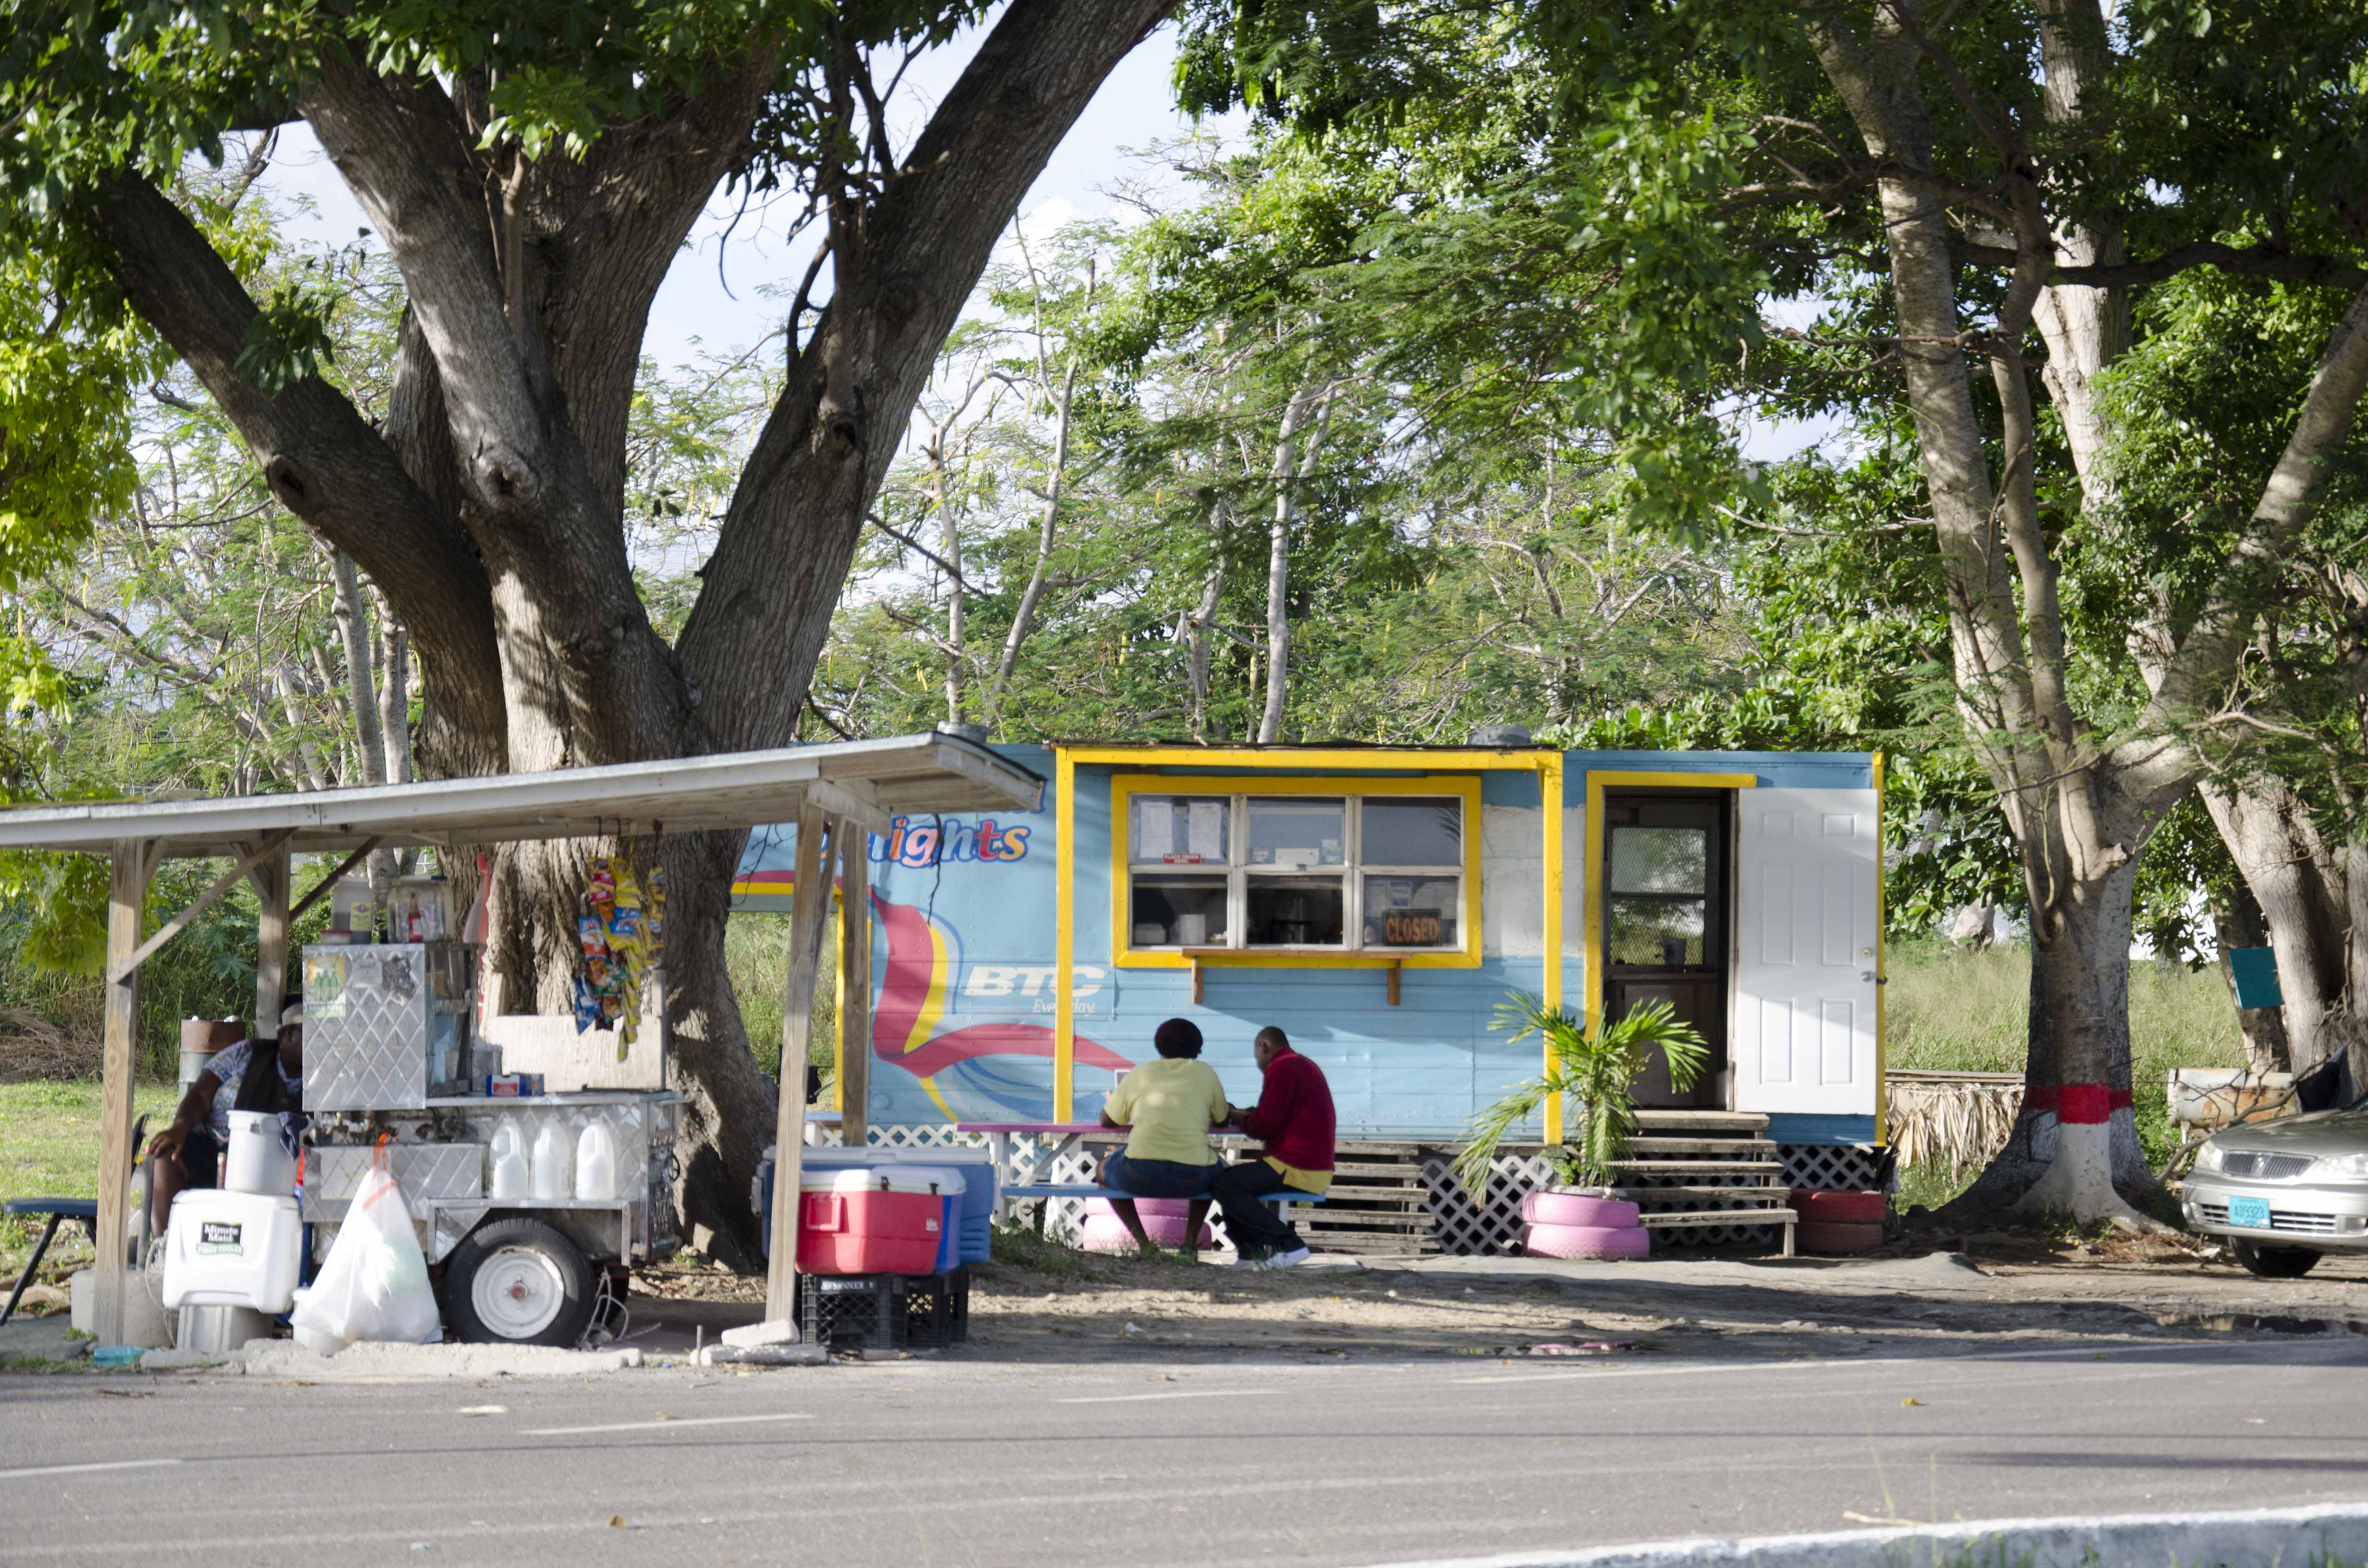 Thompson Blvd food stands